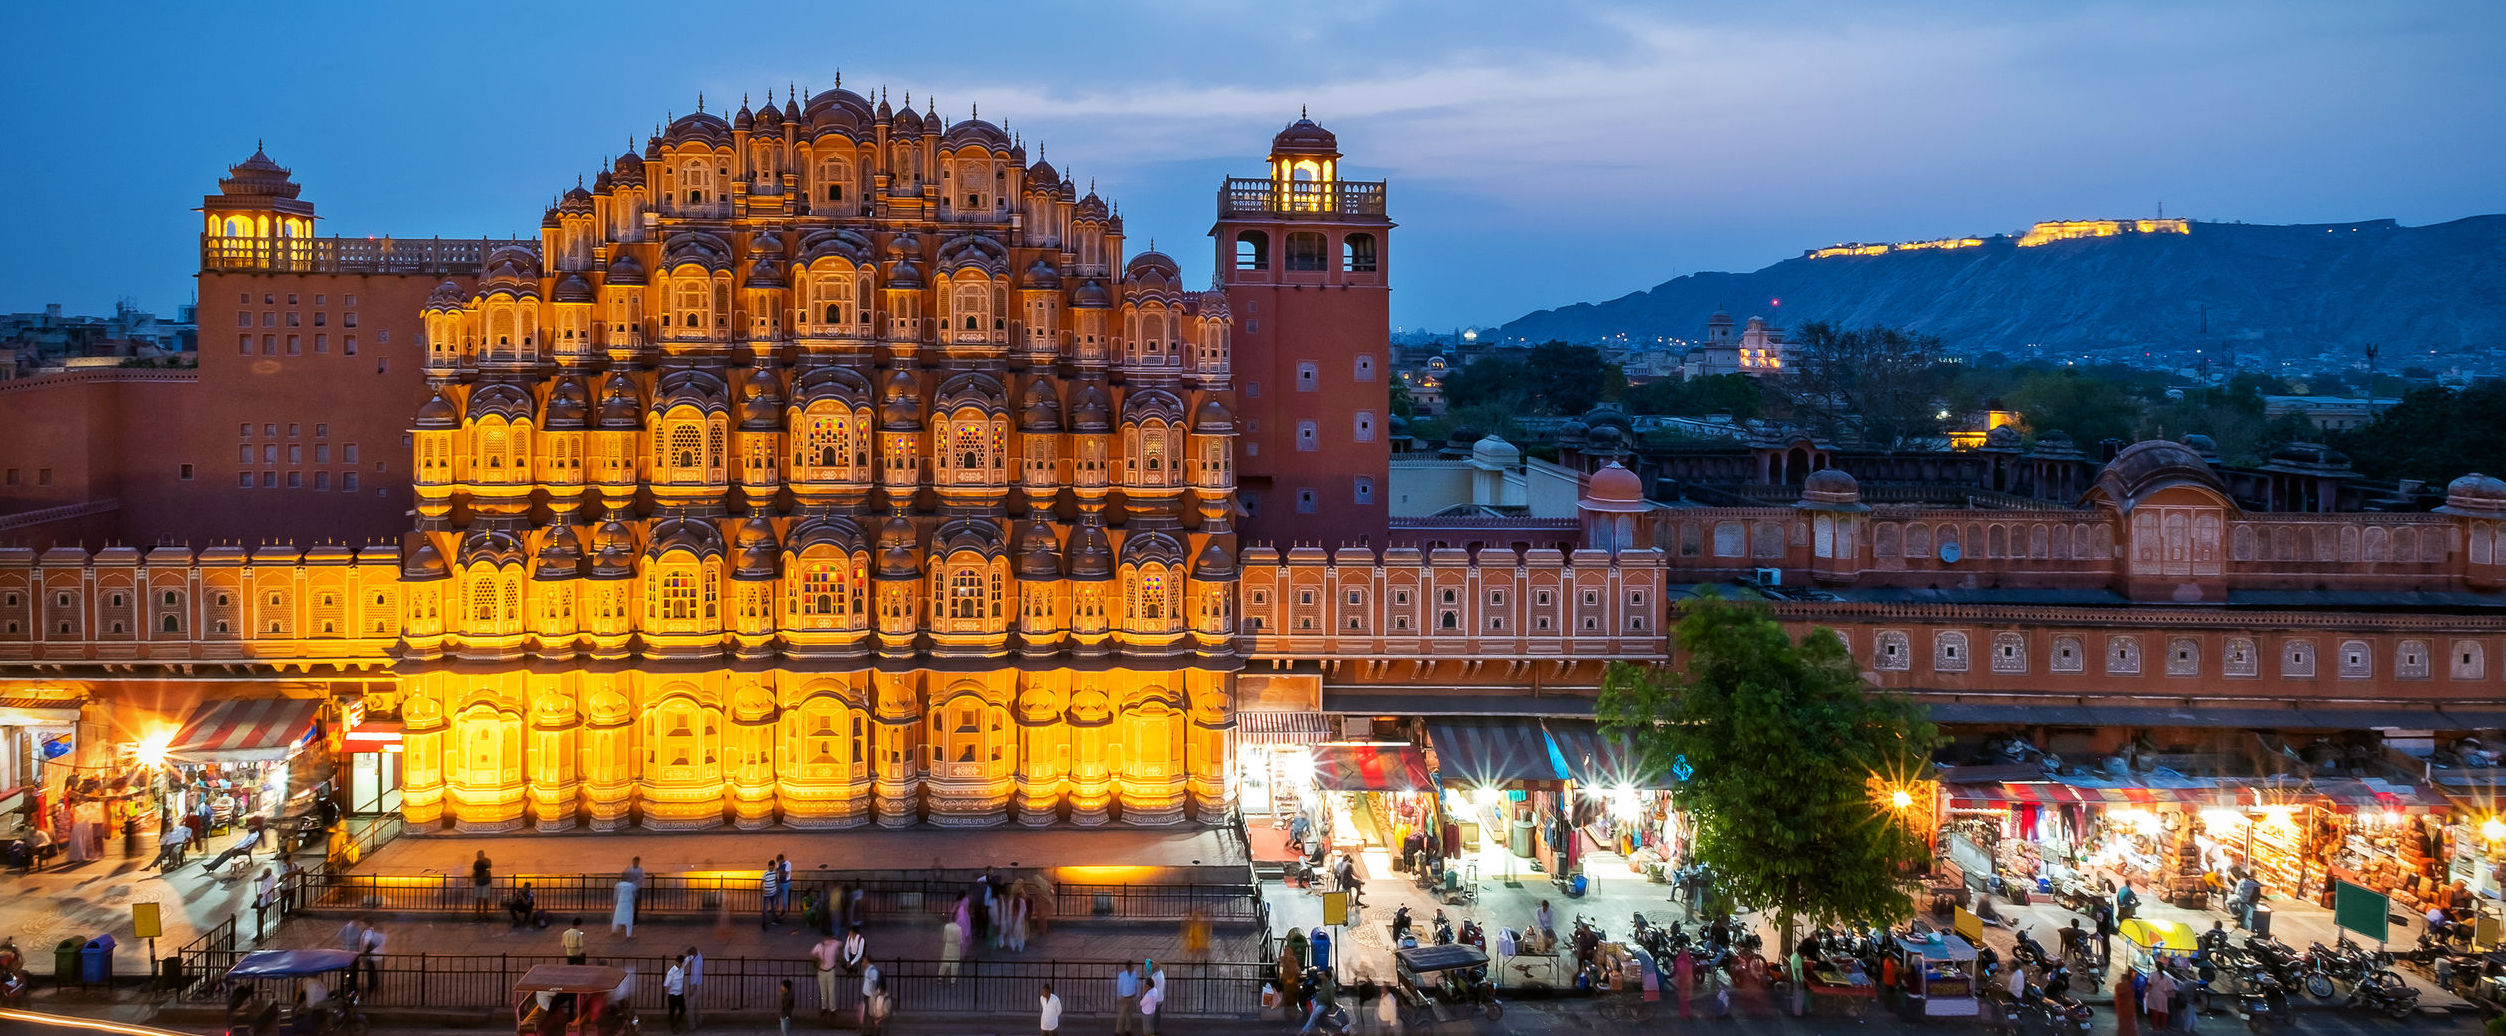 palace-of-winds-jaipur-facade-night